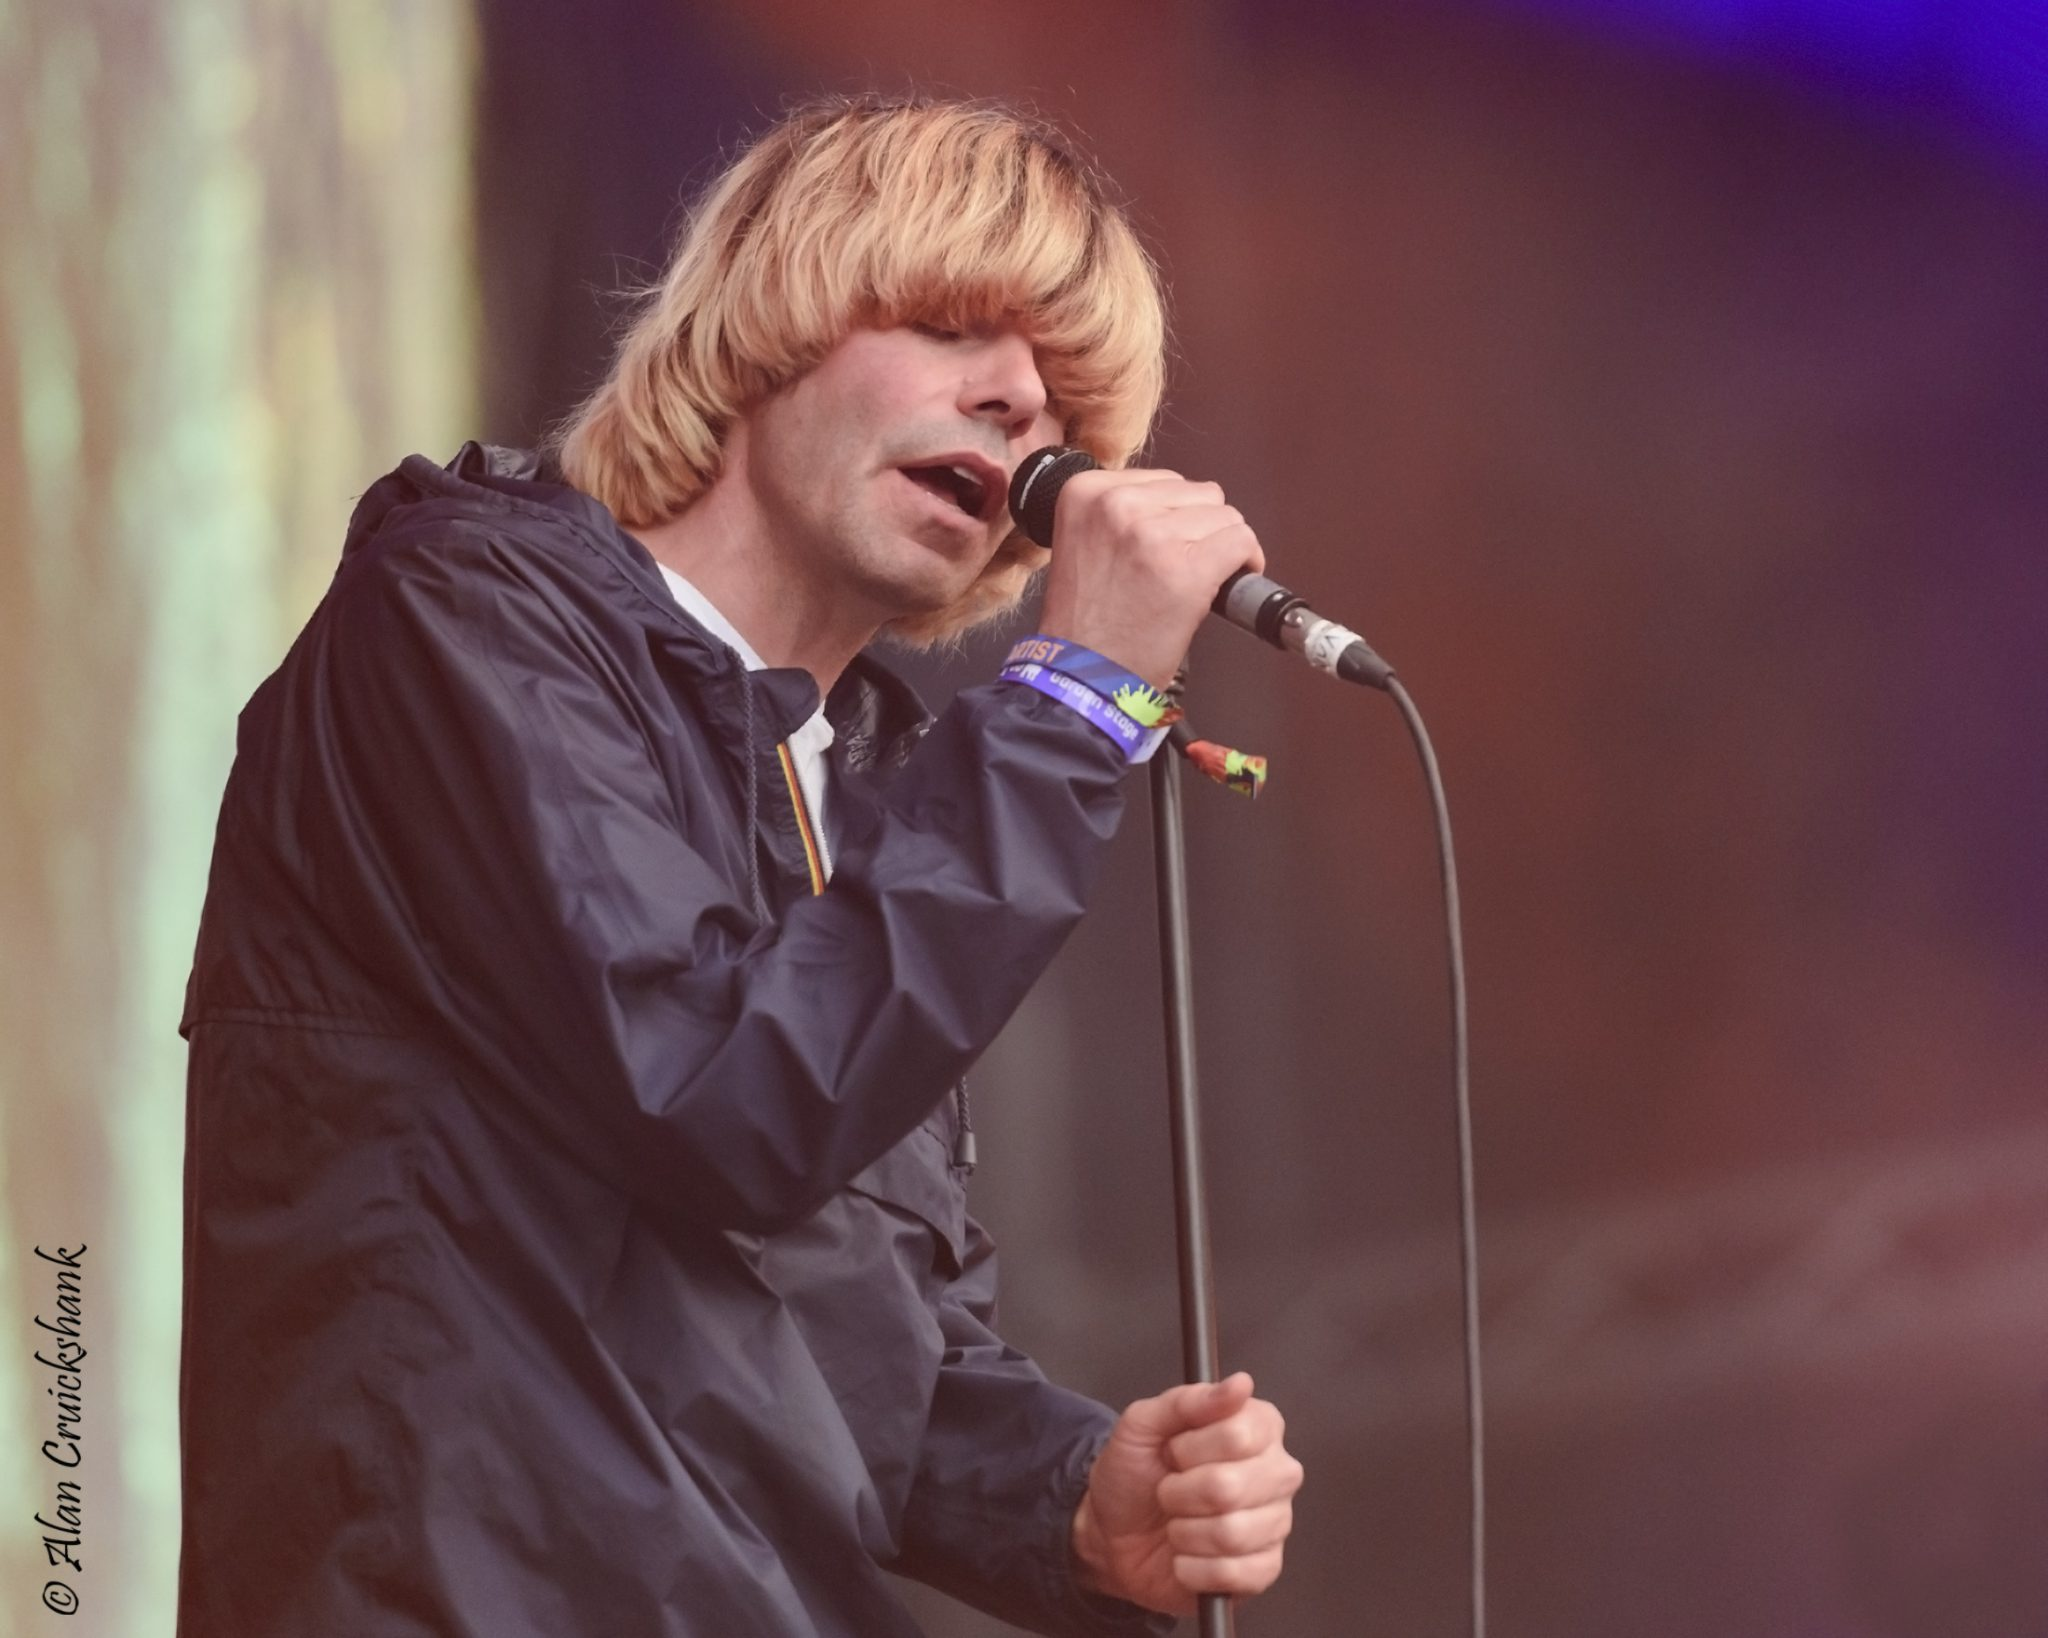 rsbCa - The Charlatans, Friday Belladrum 2018 - IMAGES